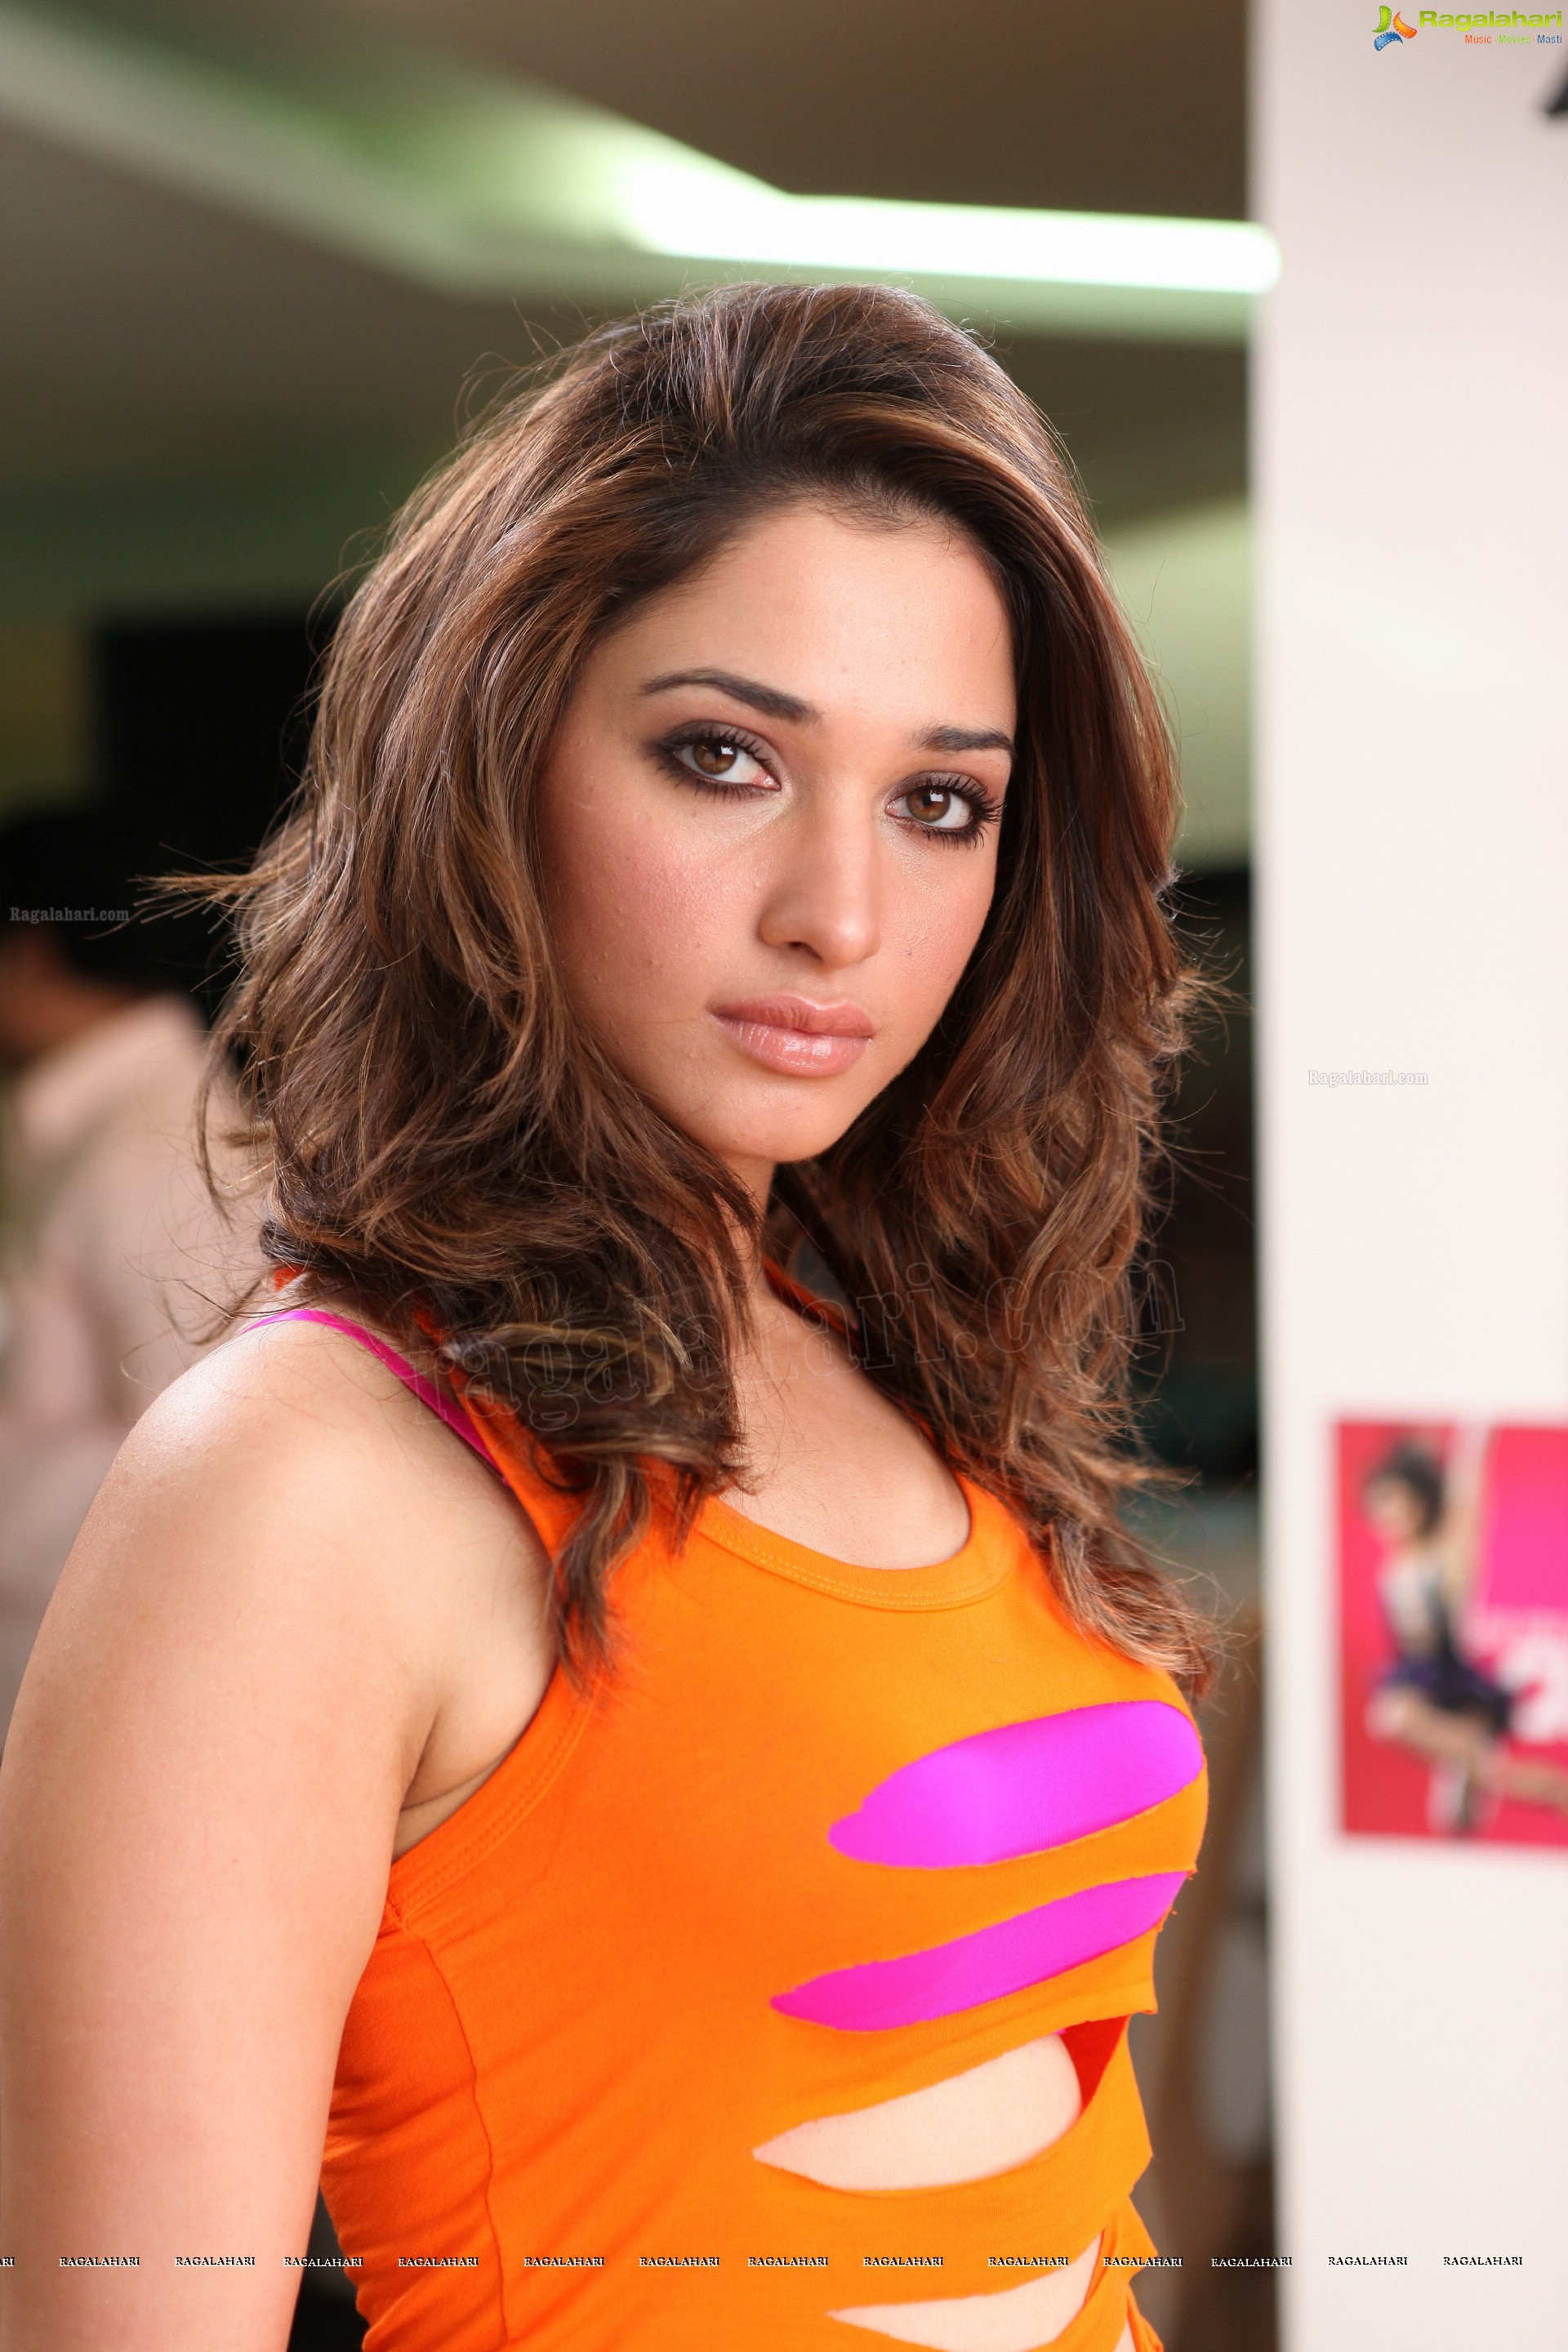 don't miss! tamanna hot stills from rebel google search song (high